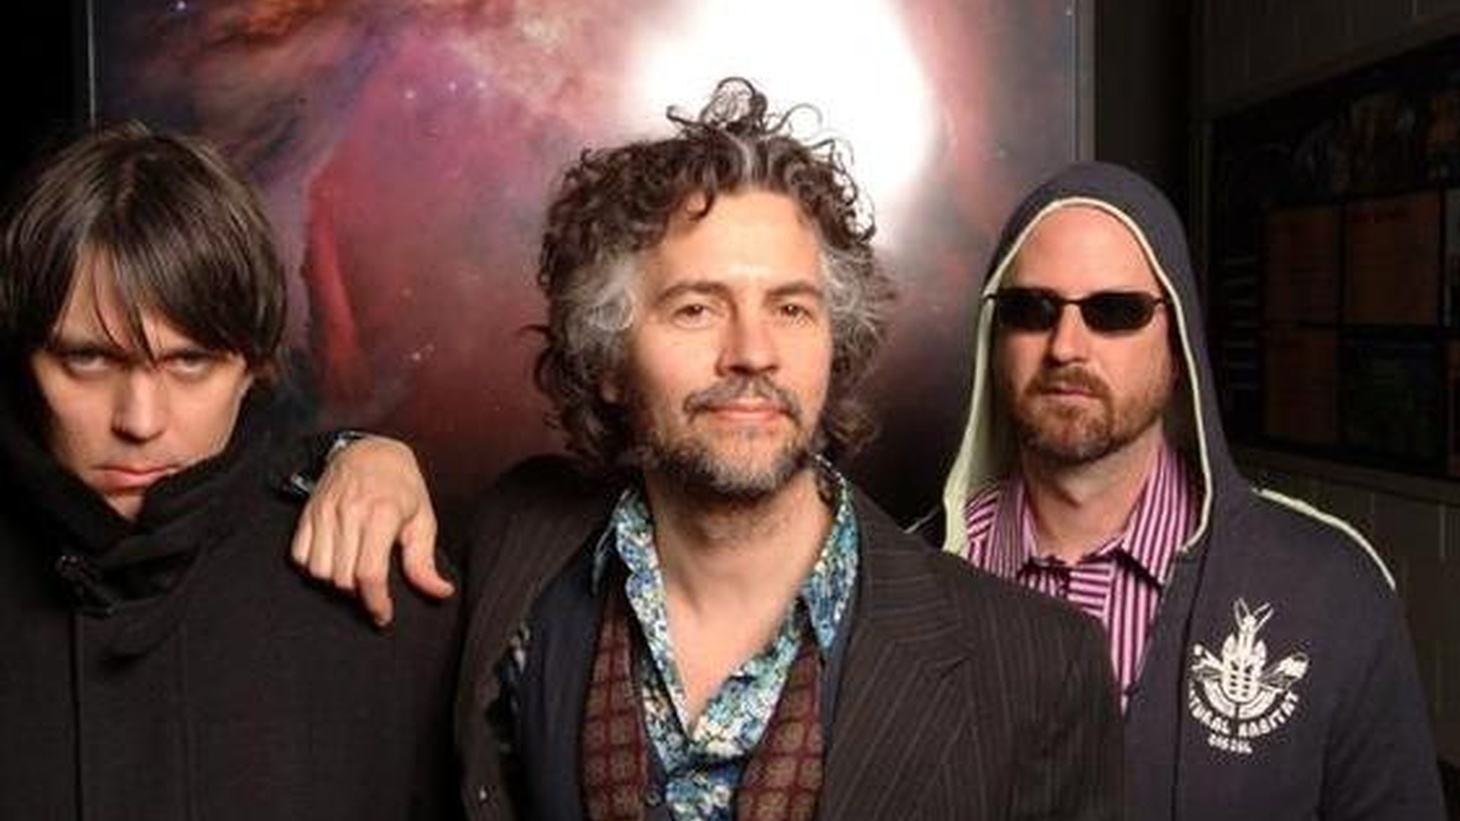 "The Flaming Lips' calling card might be their mind-melting live performances. No exception here, as they run through a batch of tracks from 2009's trippy ""Embryonic,"" live on KCRW. Step back into the rabbit hole with Wayne Coyne and company."